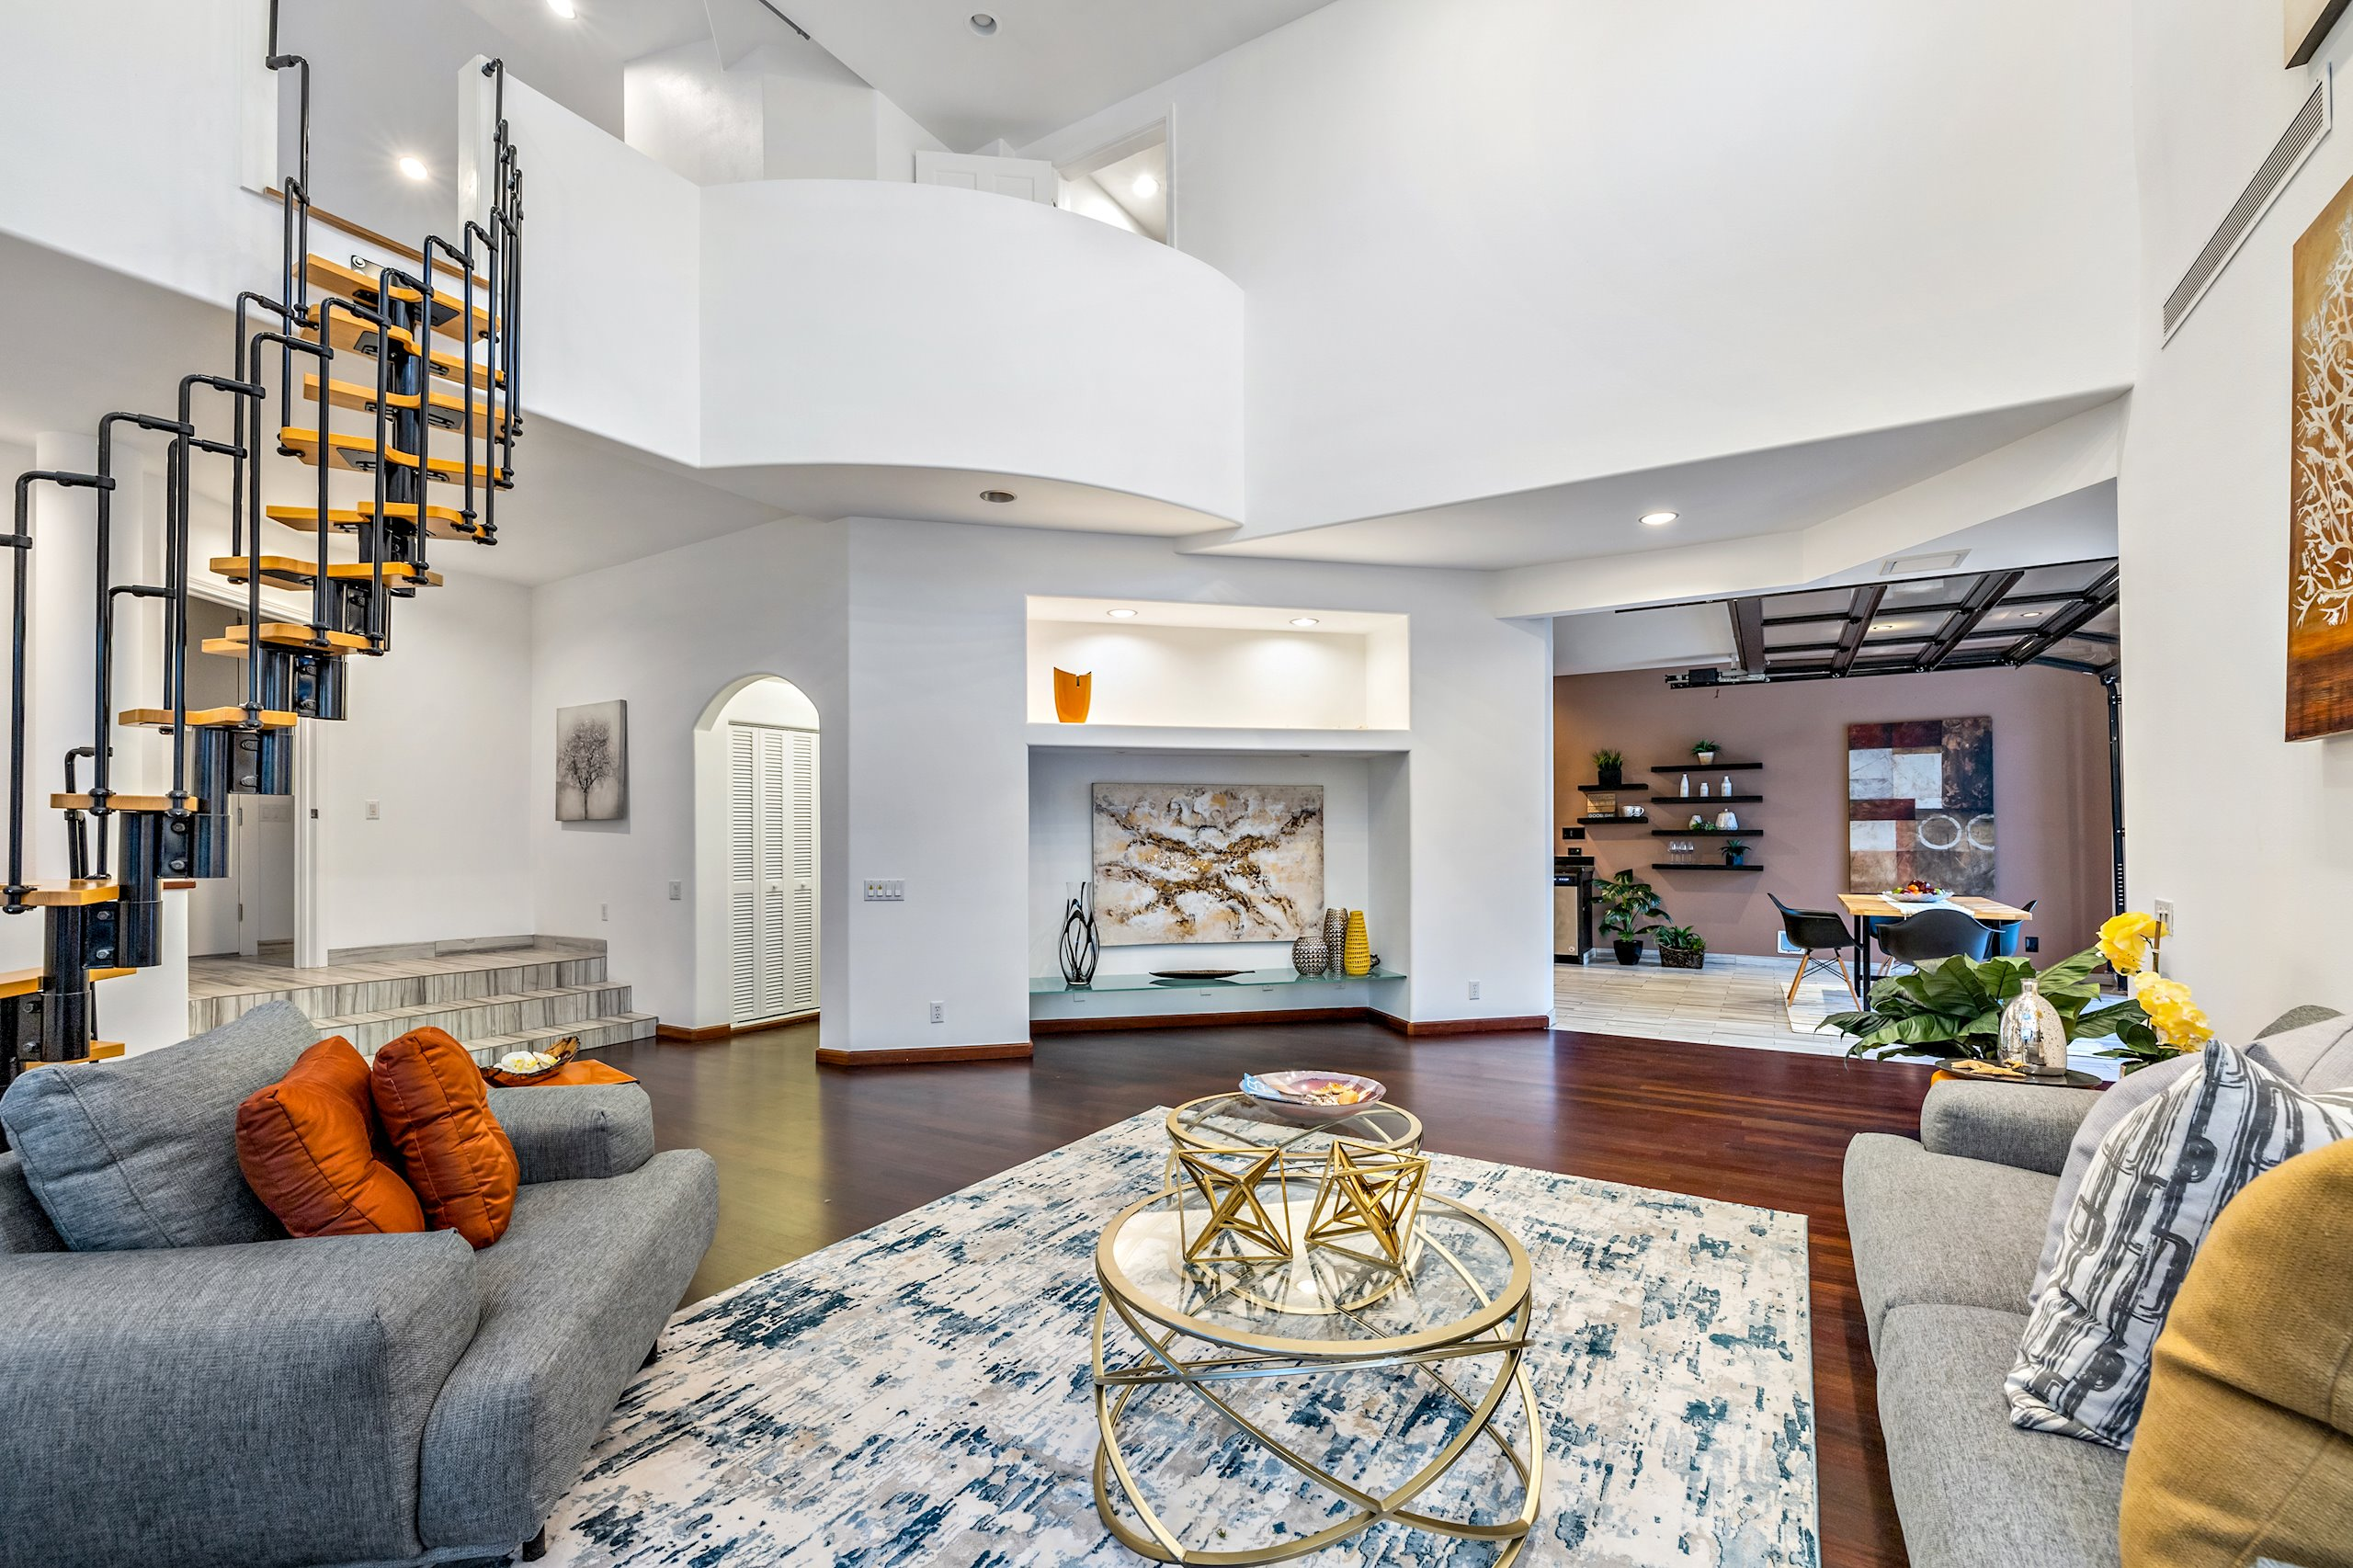 Living room shows loft and above and entrance to kitchen